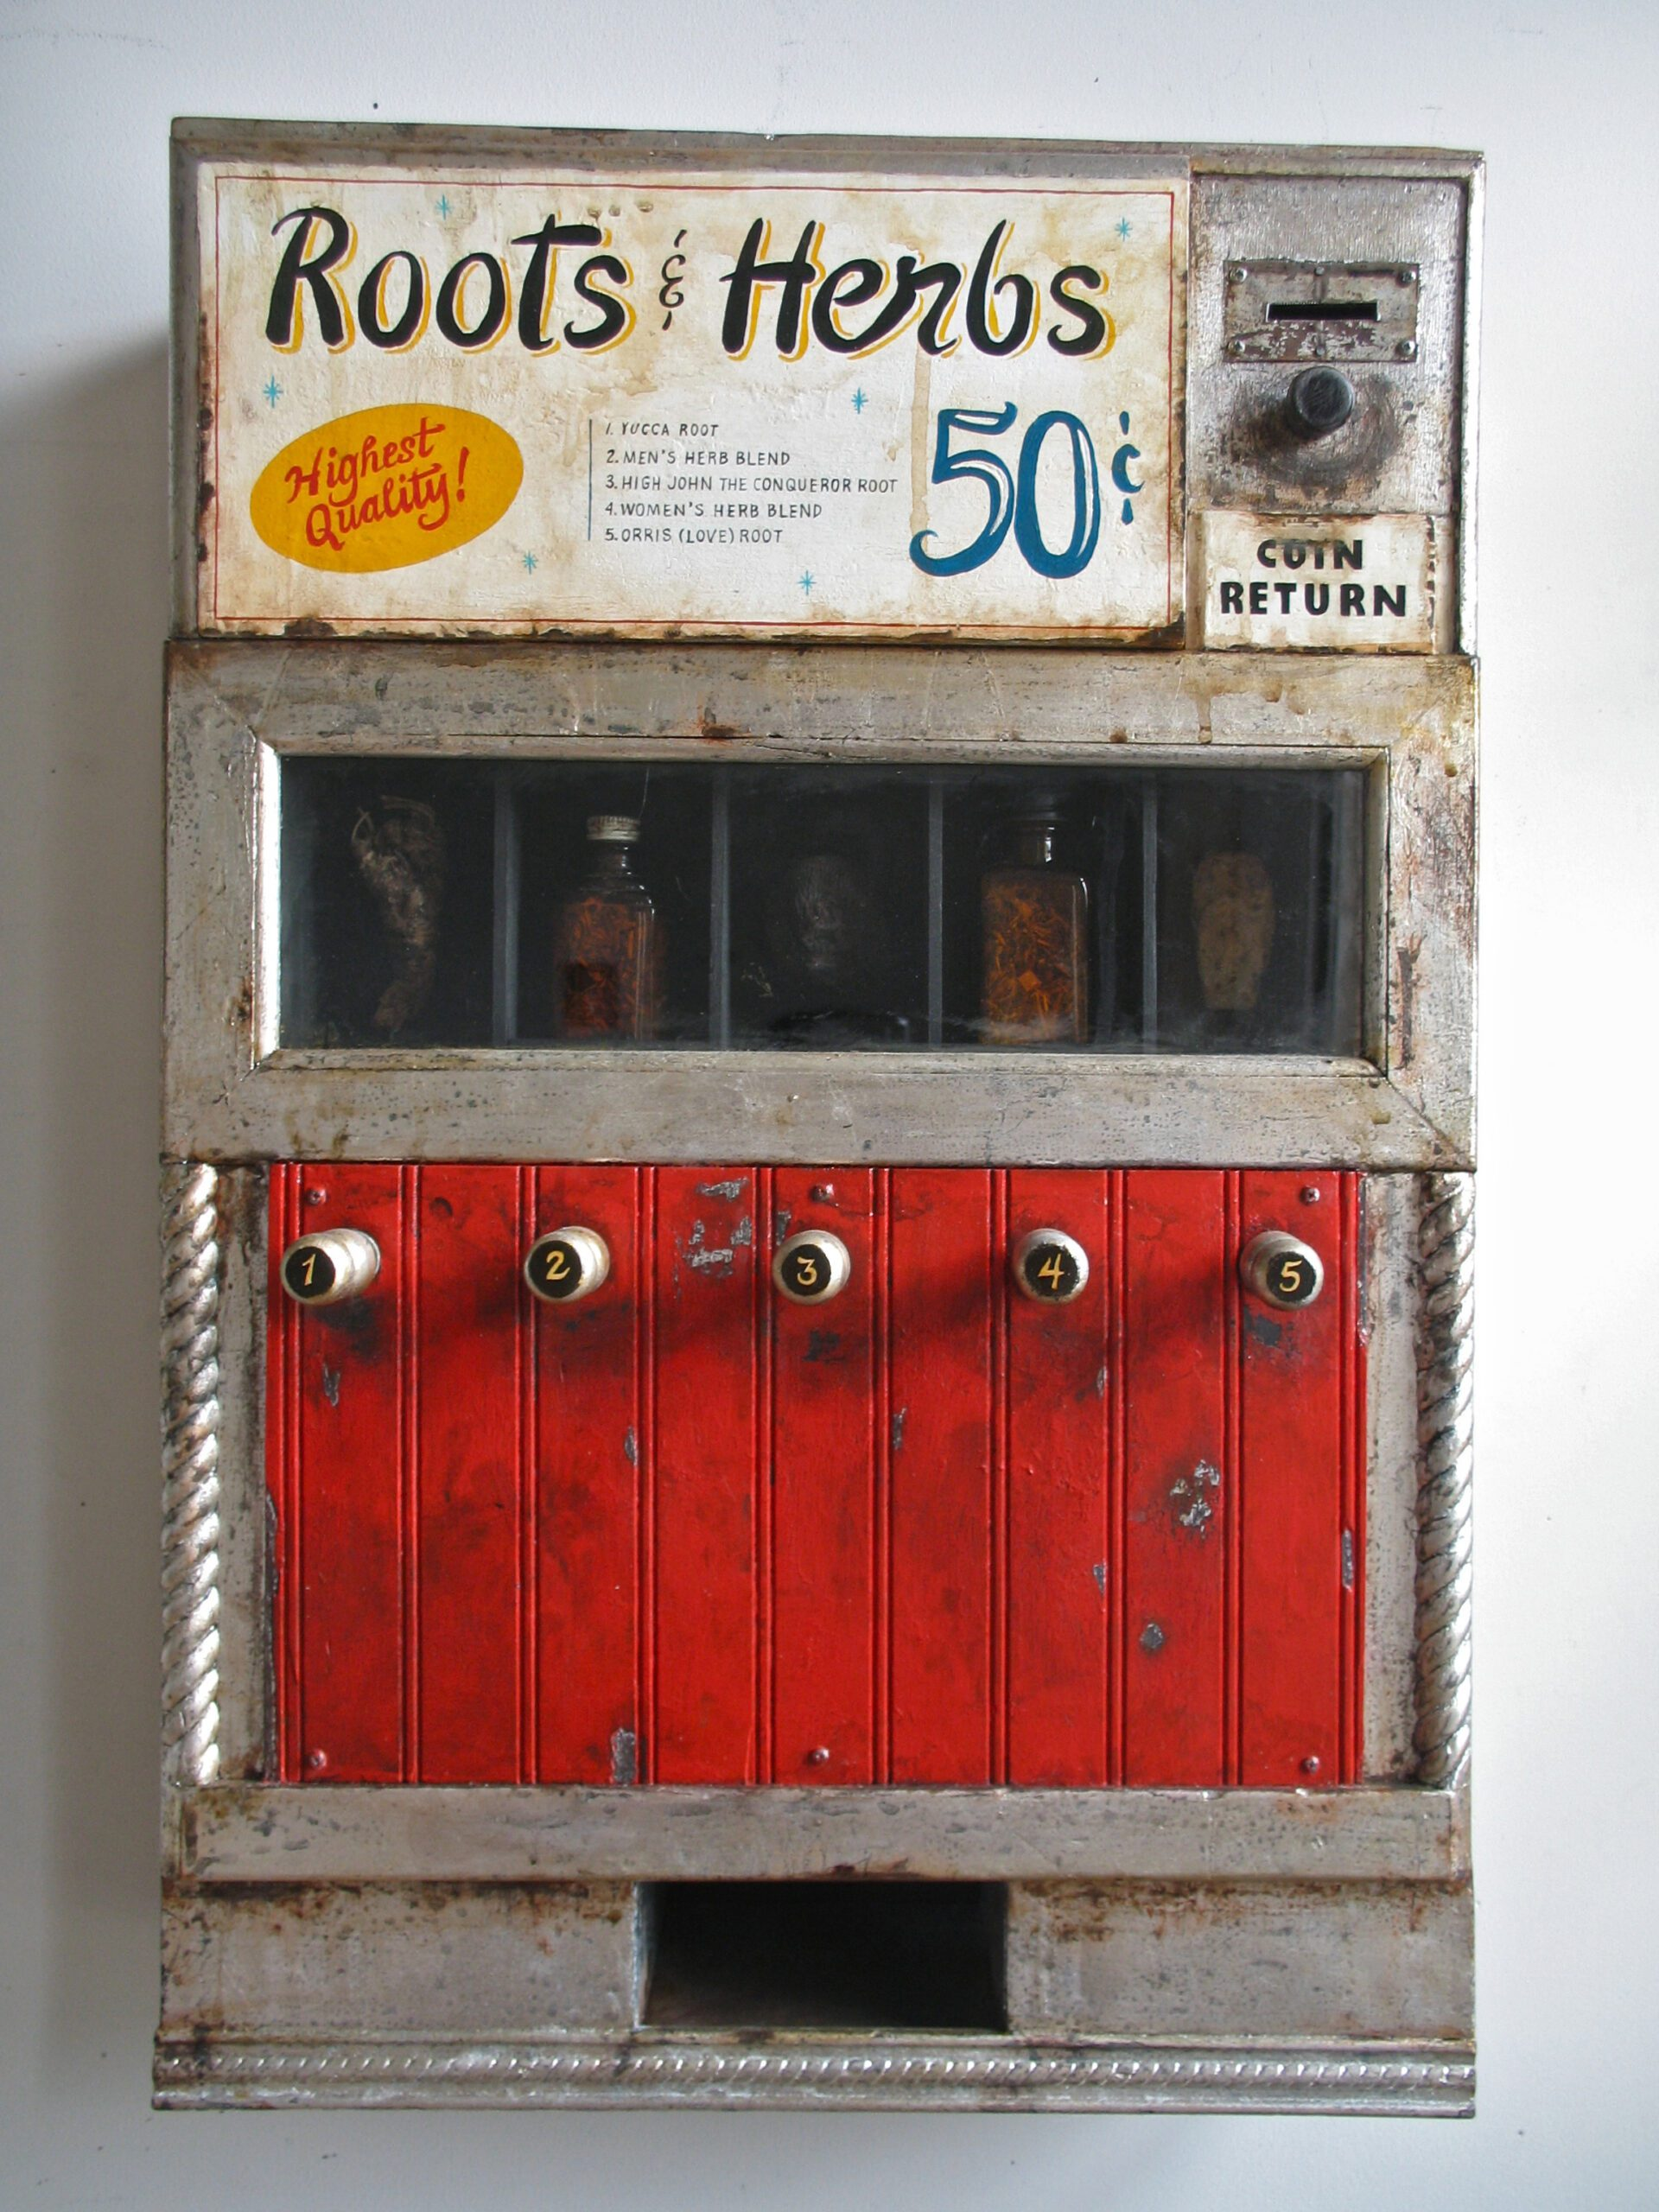 Renée Stout 2013 Wood construction, acrylic paint, silver metal leaf, glass, roots and bottles containing organic materials 27 x 16 x 7 in (64.8 x 43.2 x 15.2 cm) 2021 Marc Straus Gallery